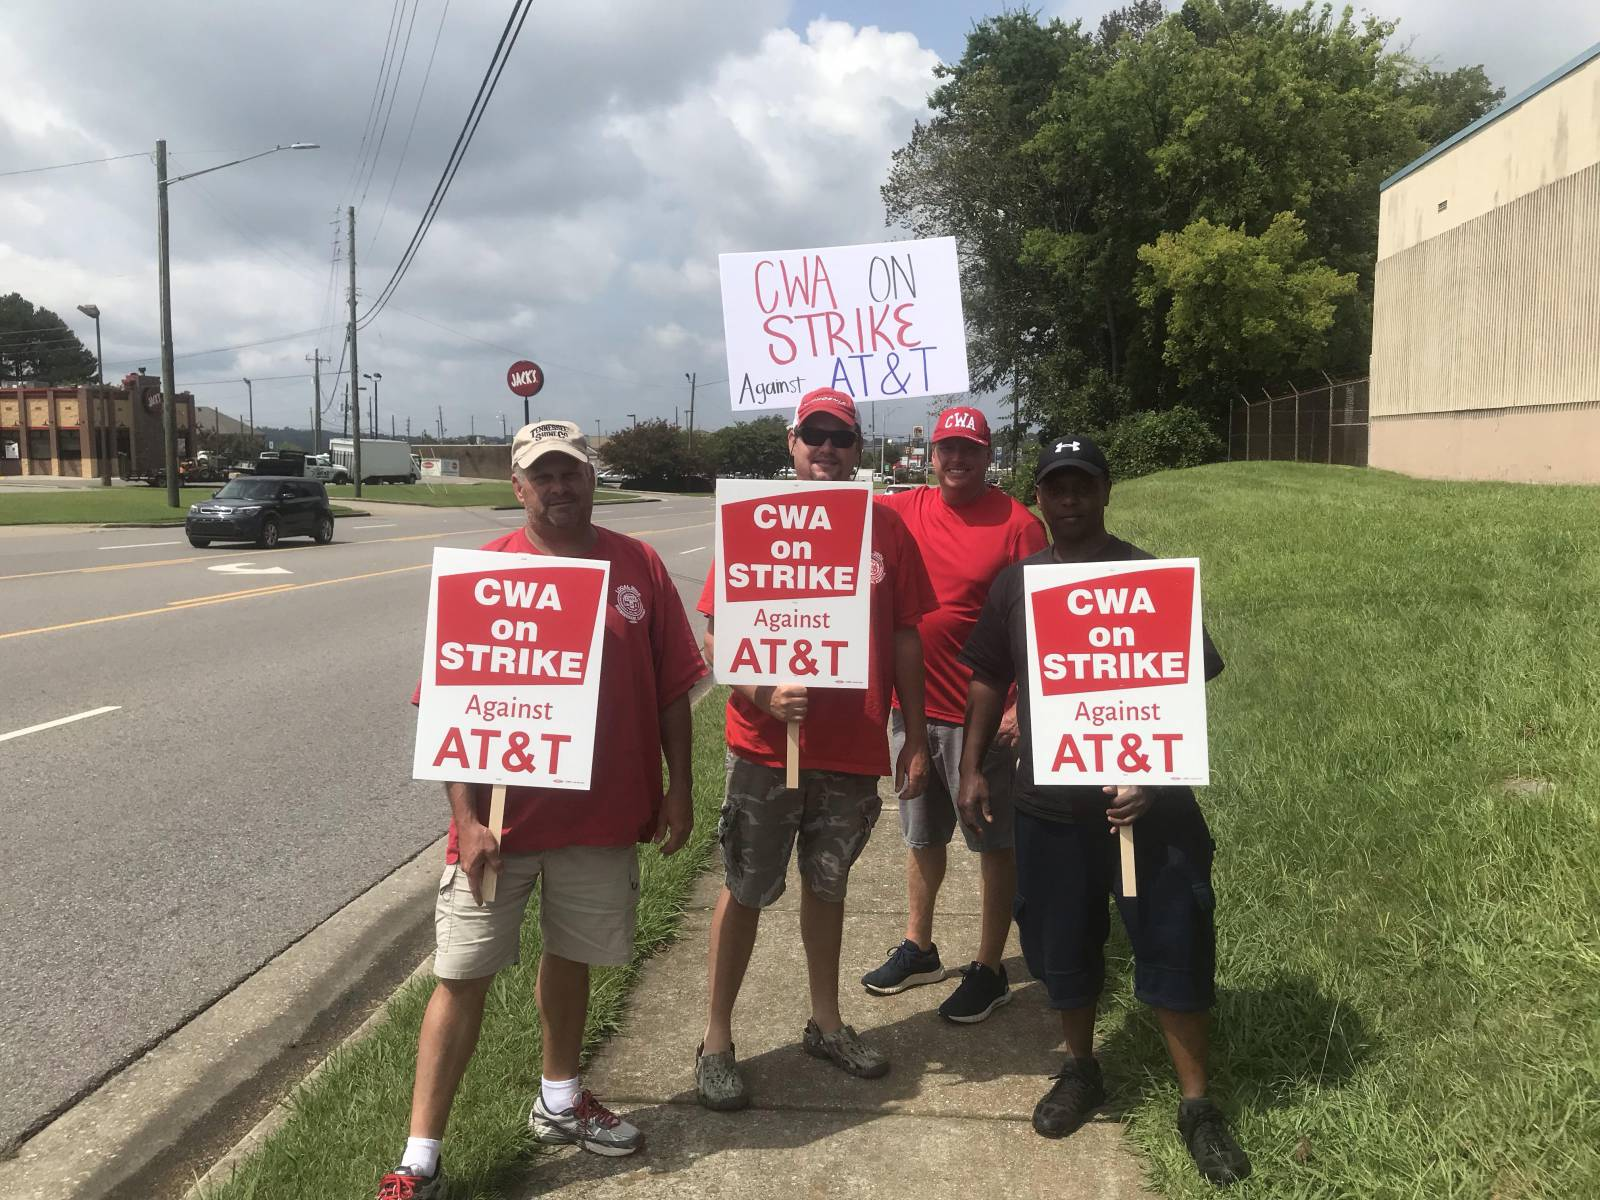 20,000 Striking CWA workers force AT&T back to bargaining table